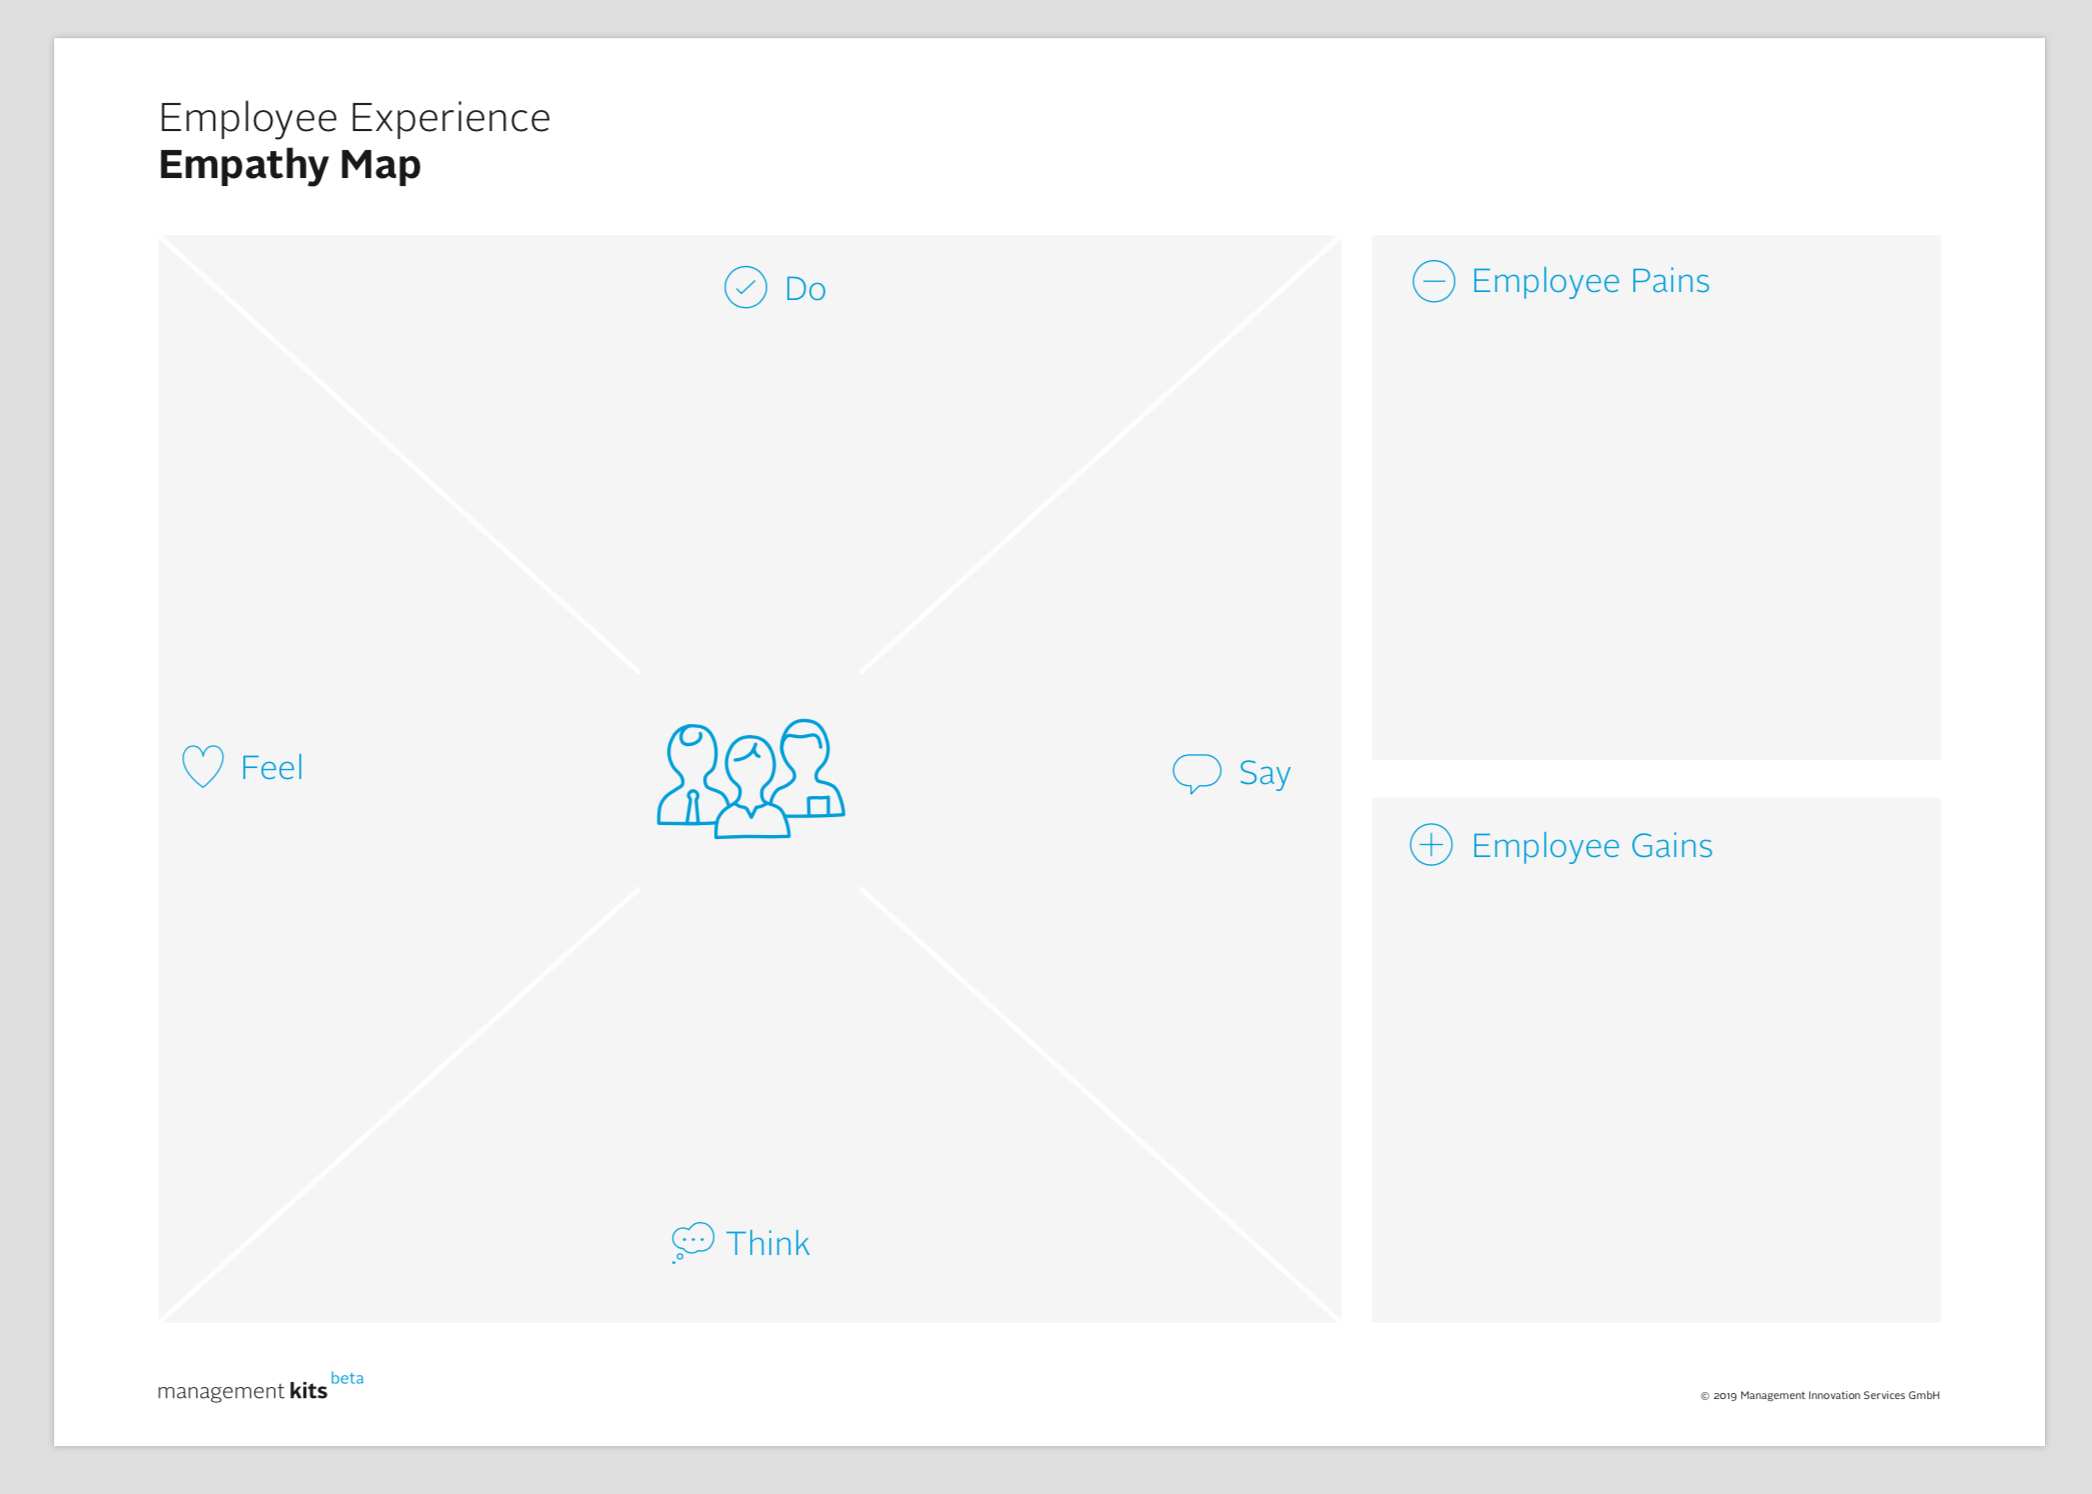 Management-Kits-Employee-Experience-Empathy-Map.png